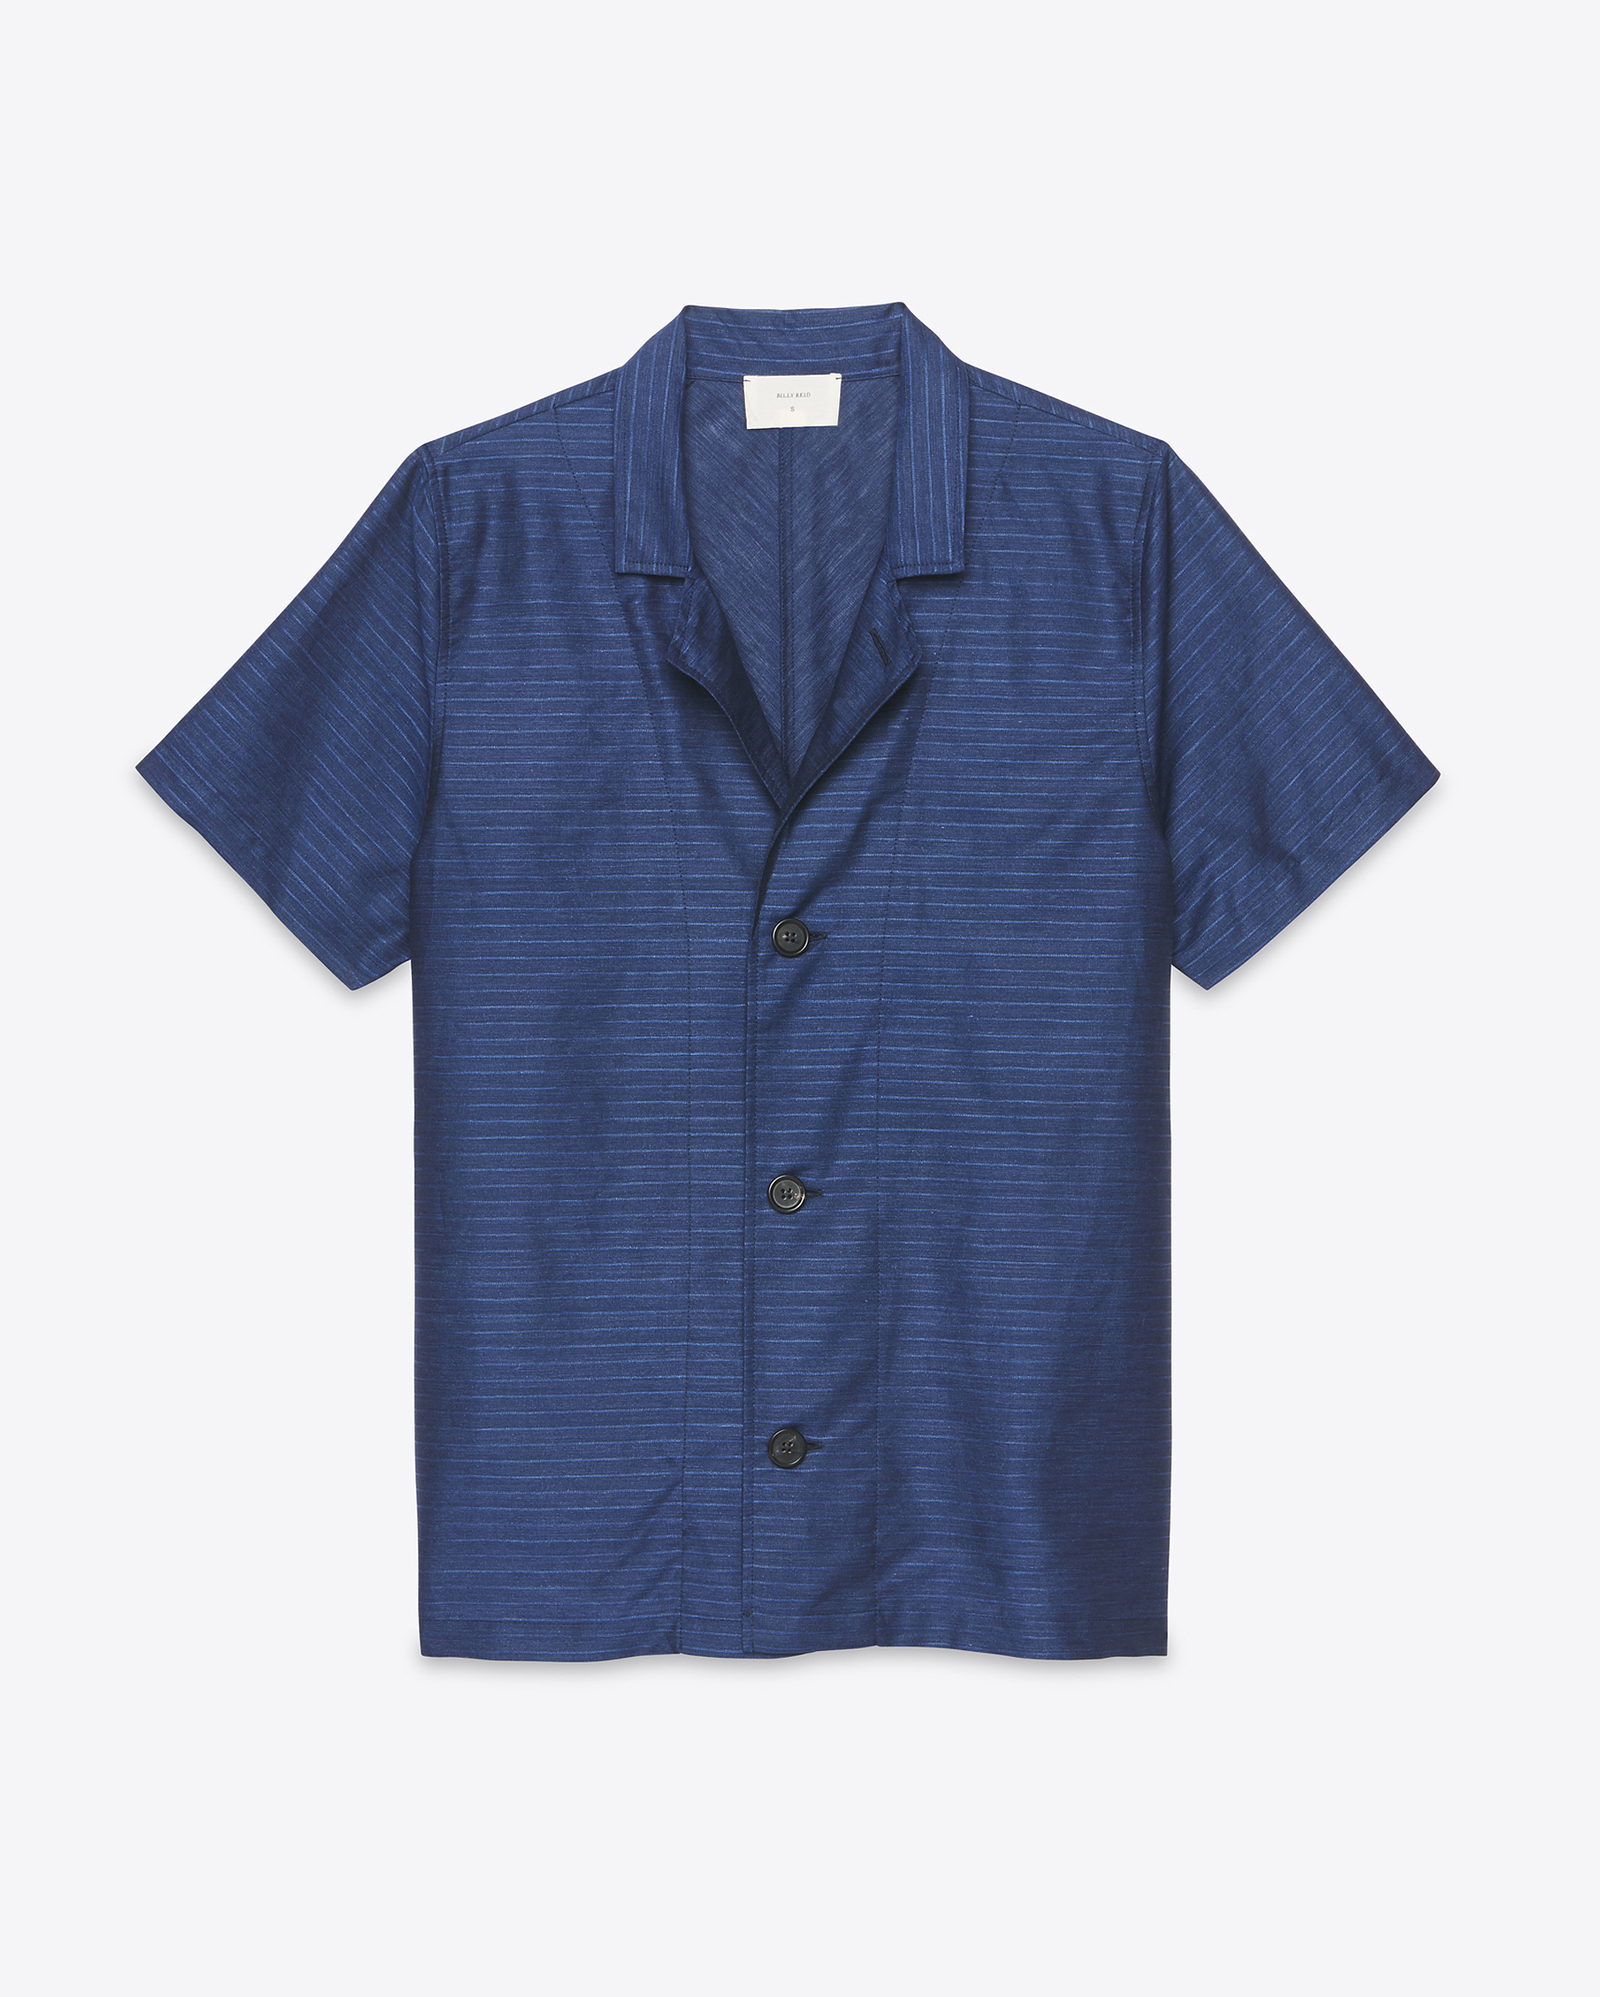 Billy reid camp shirt in blue lyst for Navy blue color shirt